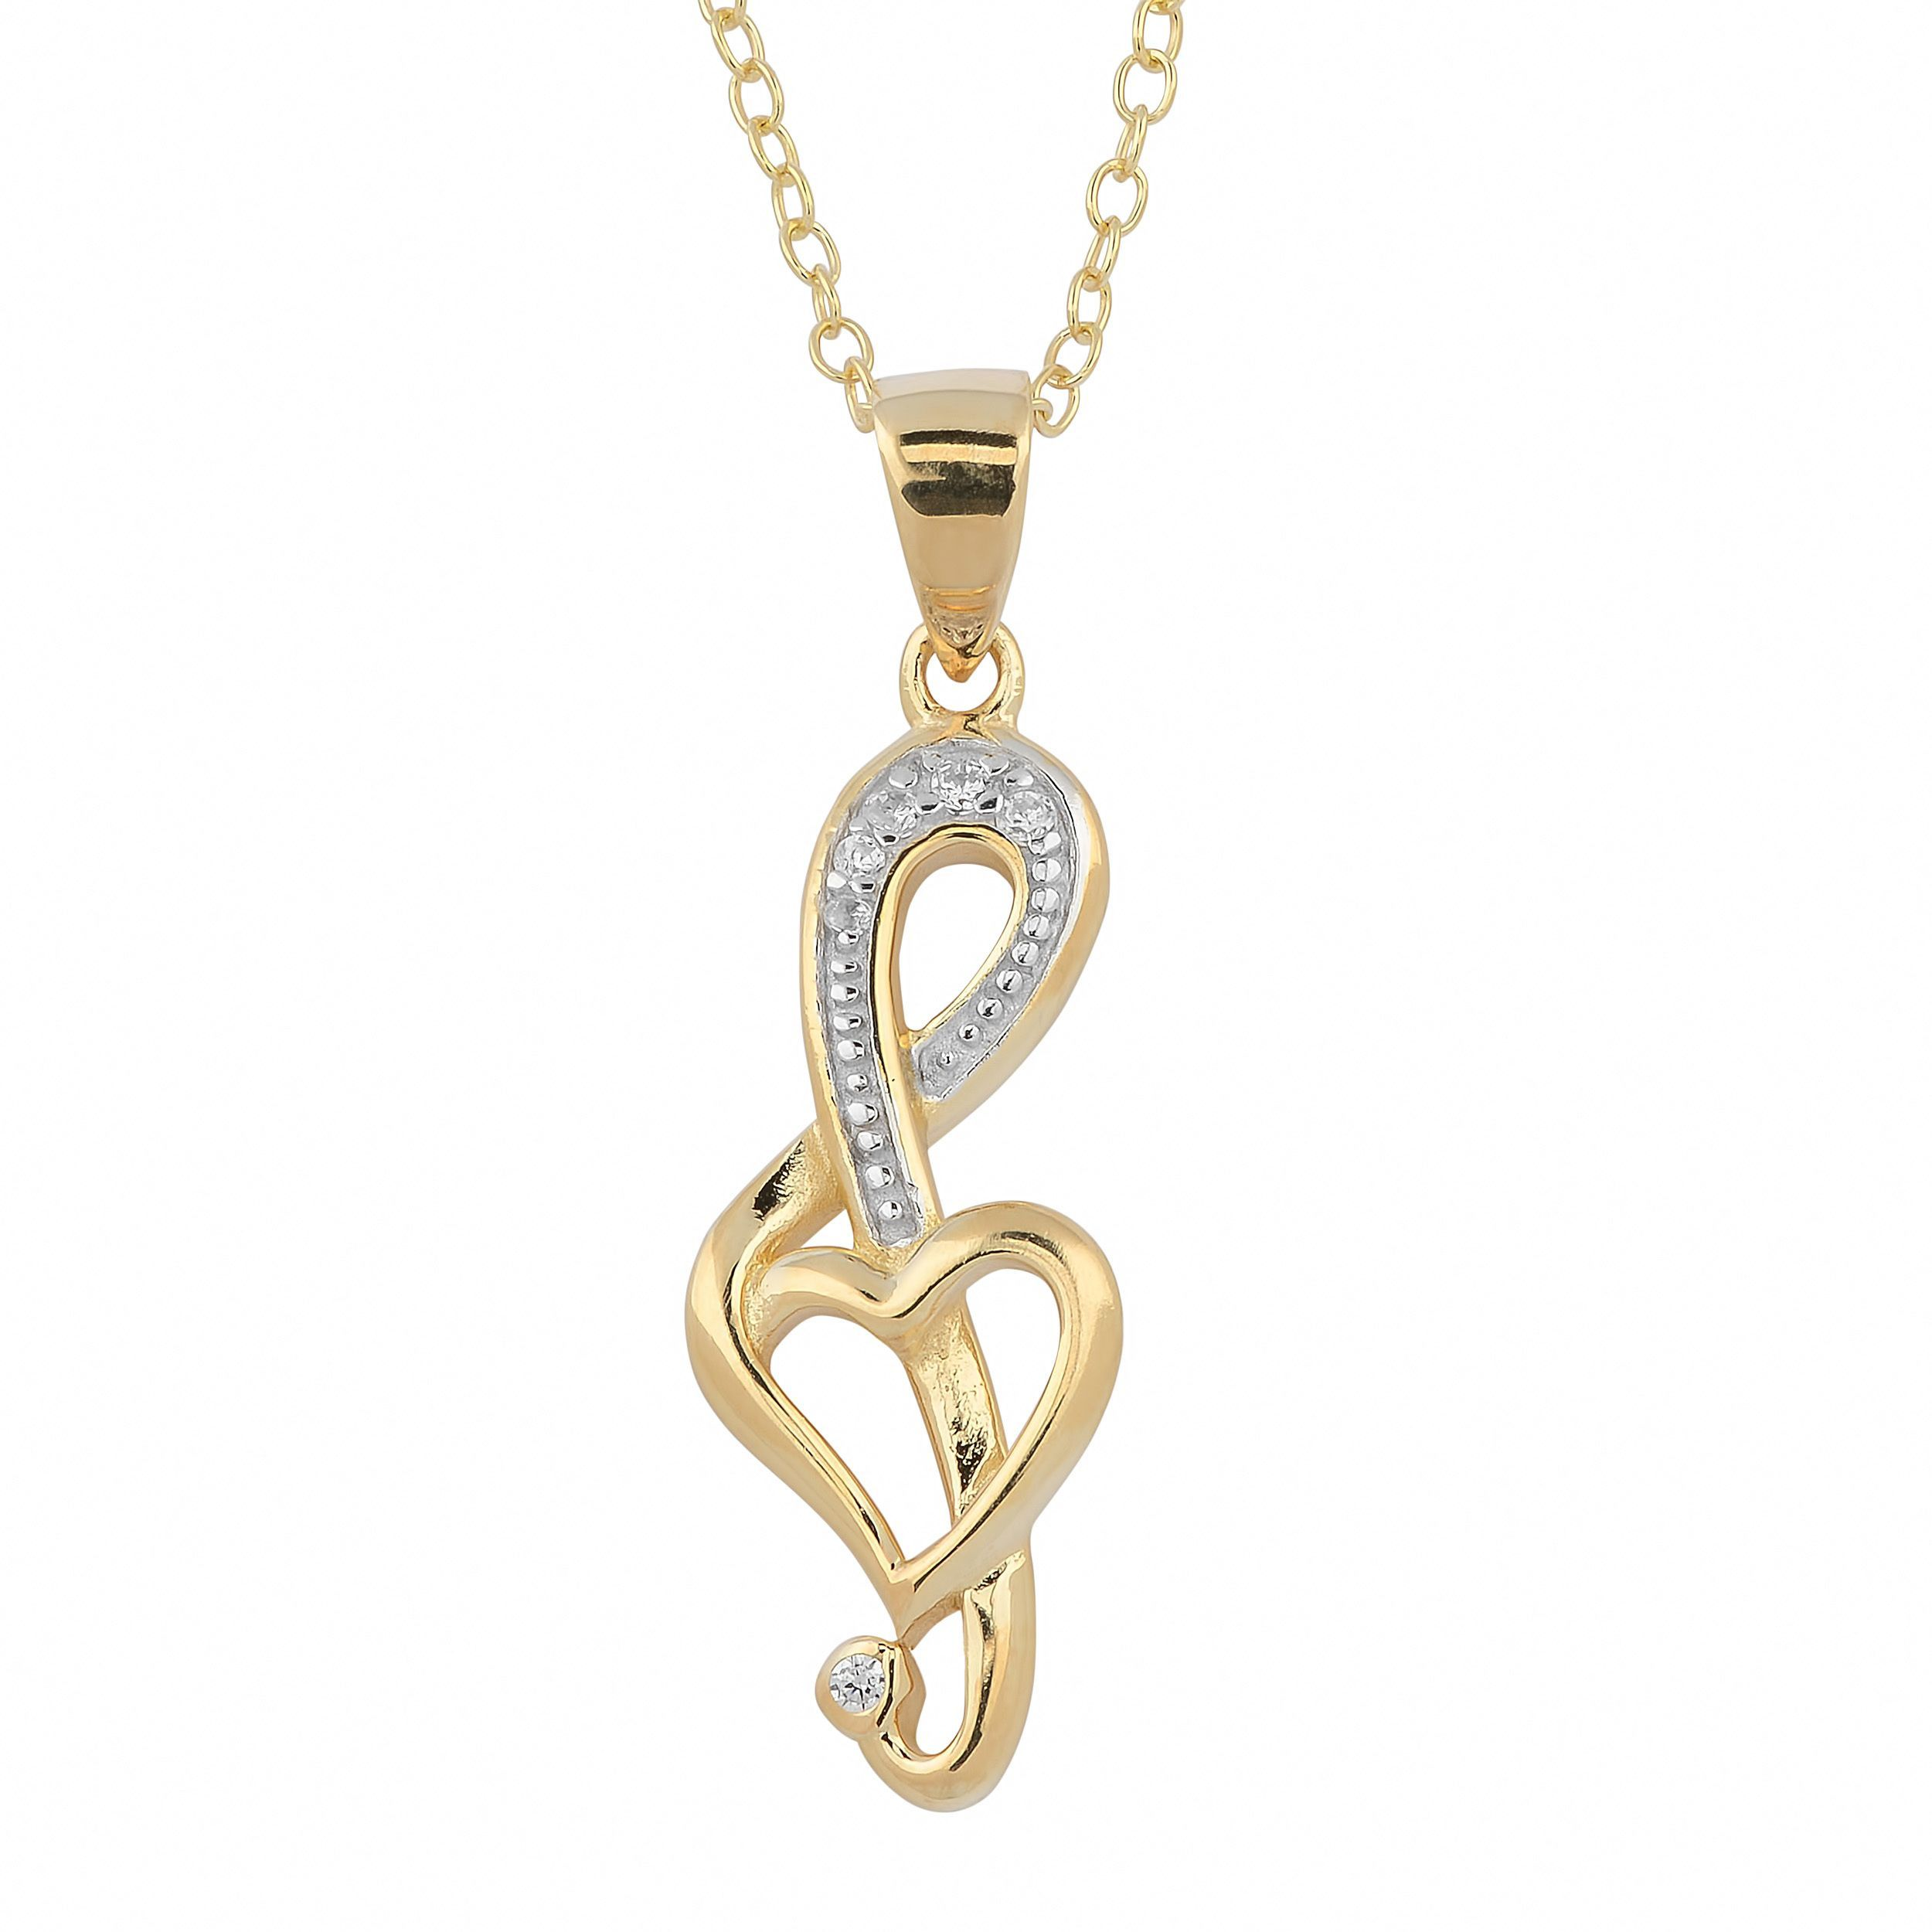 Fremada Gold Over Sterling Silver and Cubic Zirconia G-clef Necklace